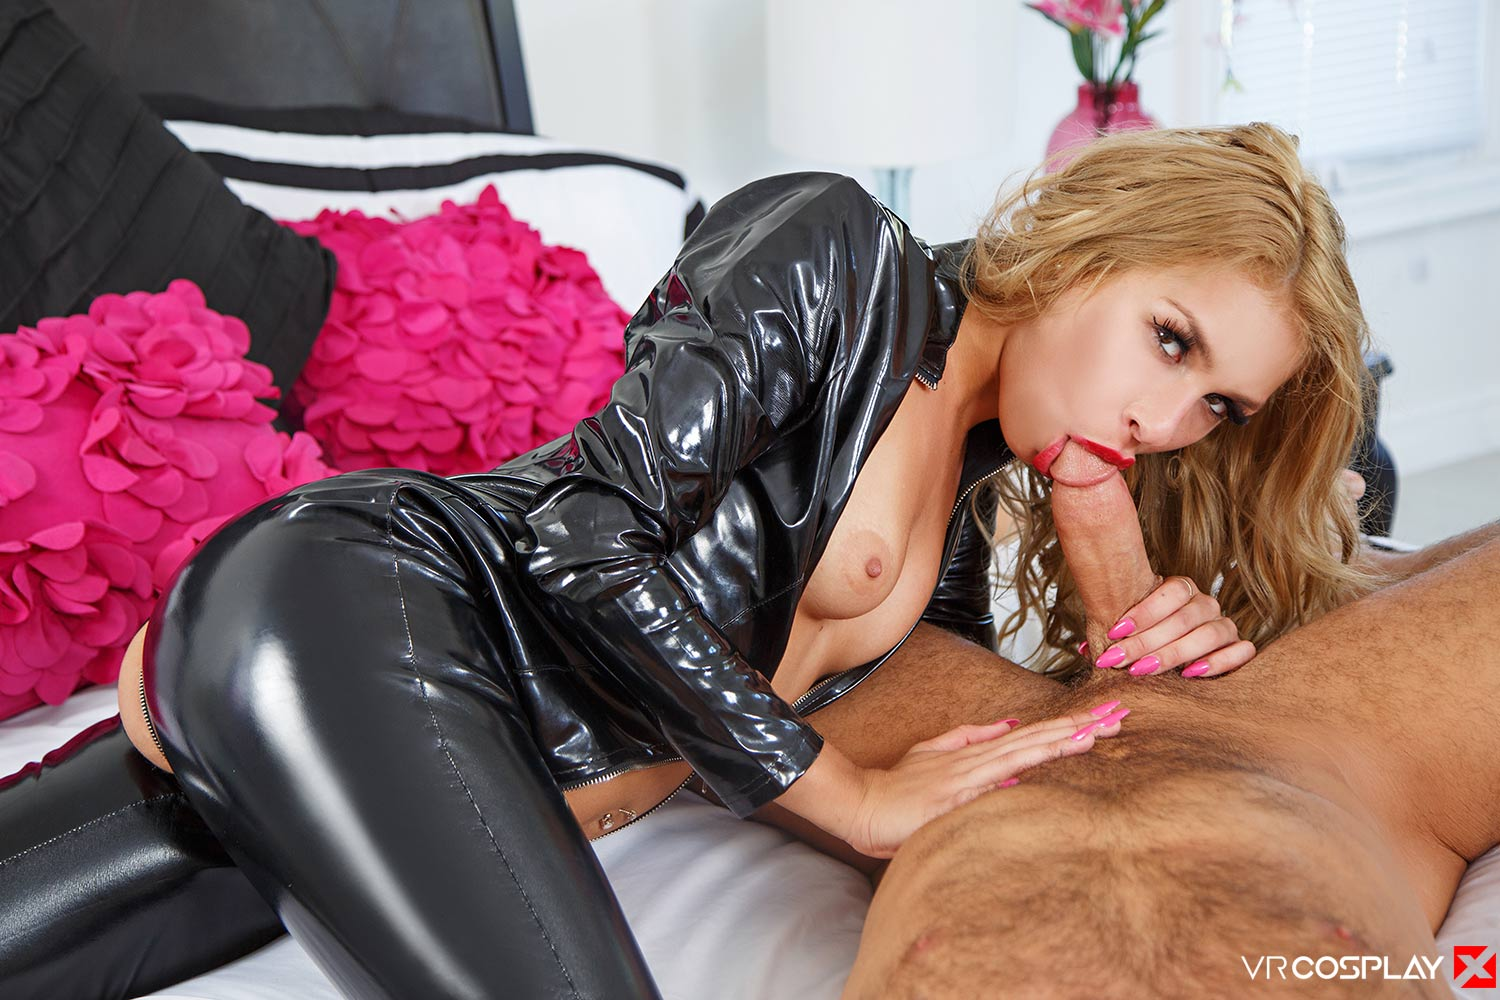 Carmen Caliente as Catwoman Blowjob